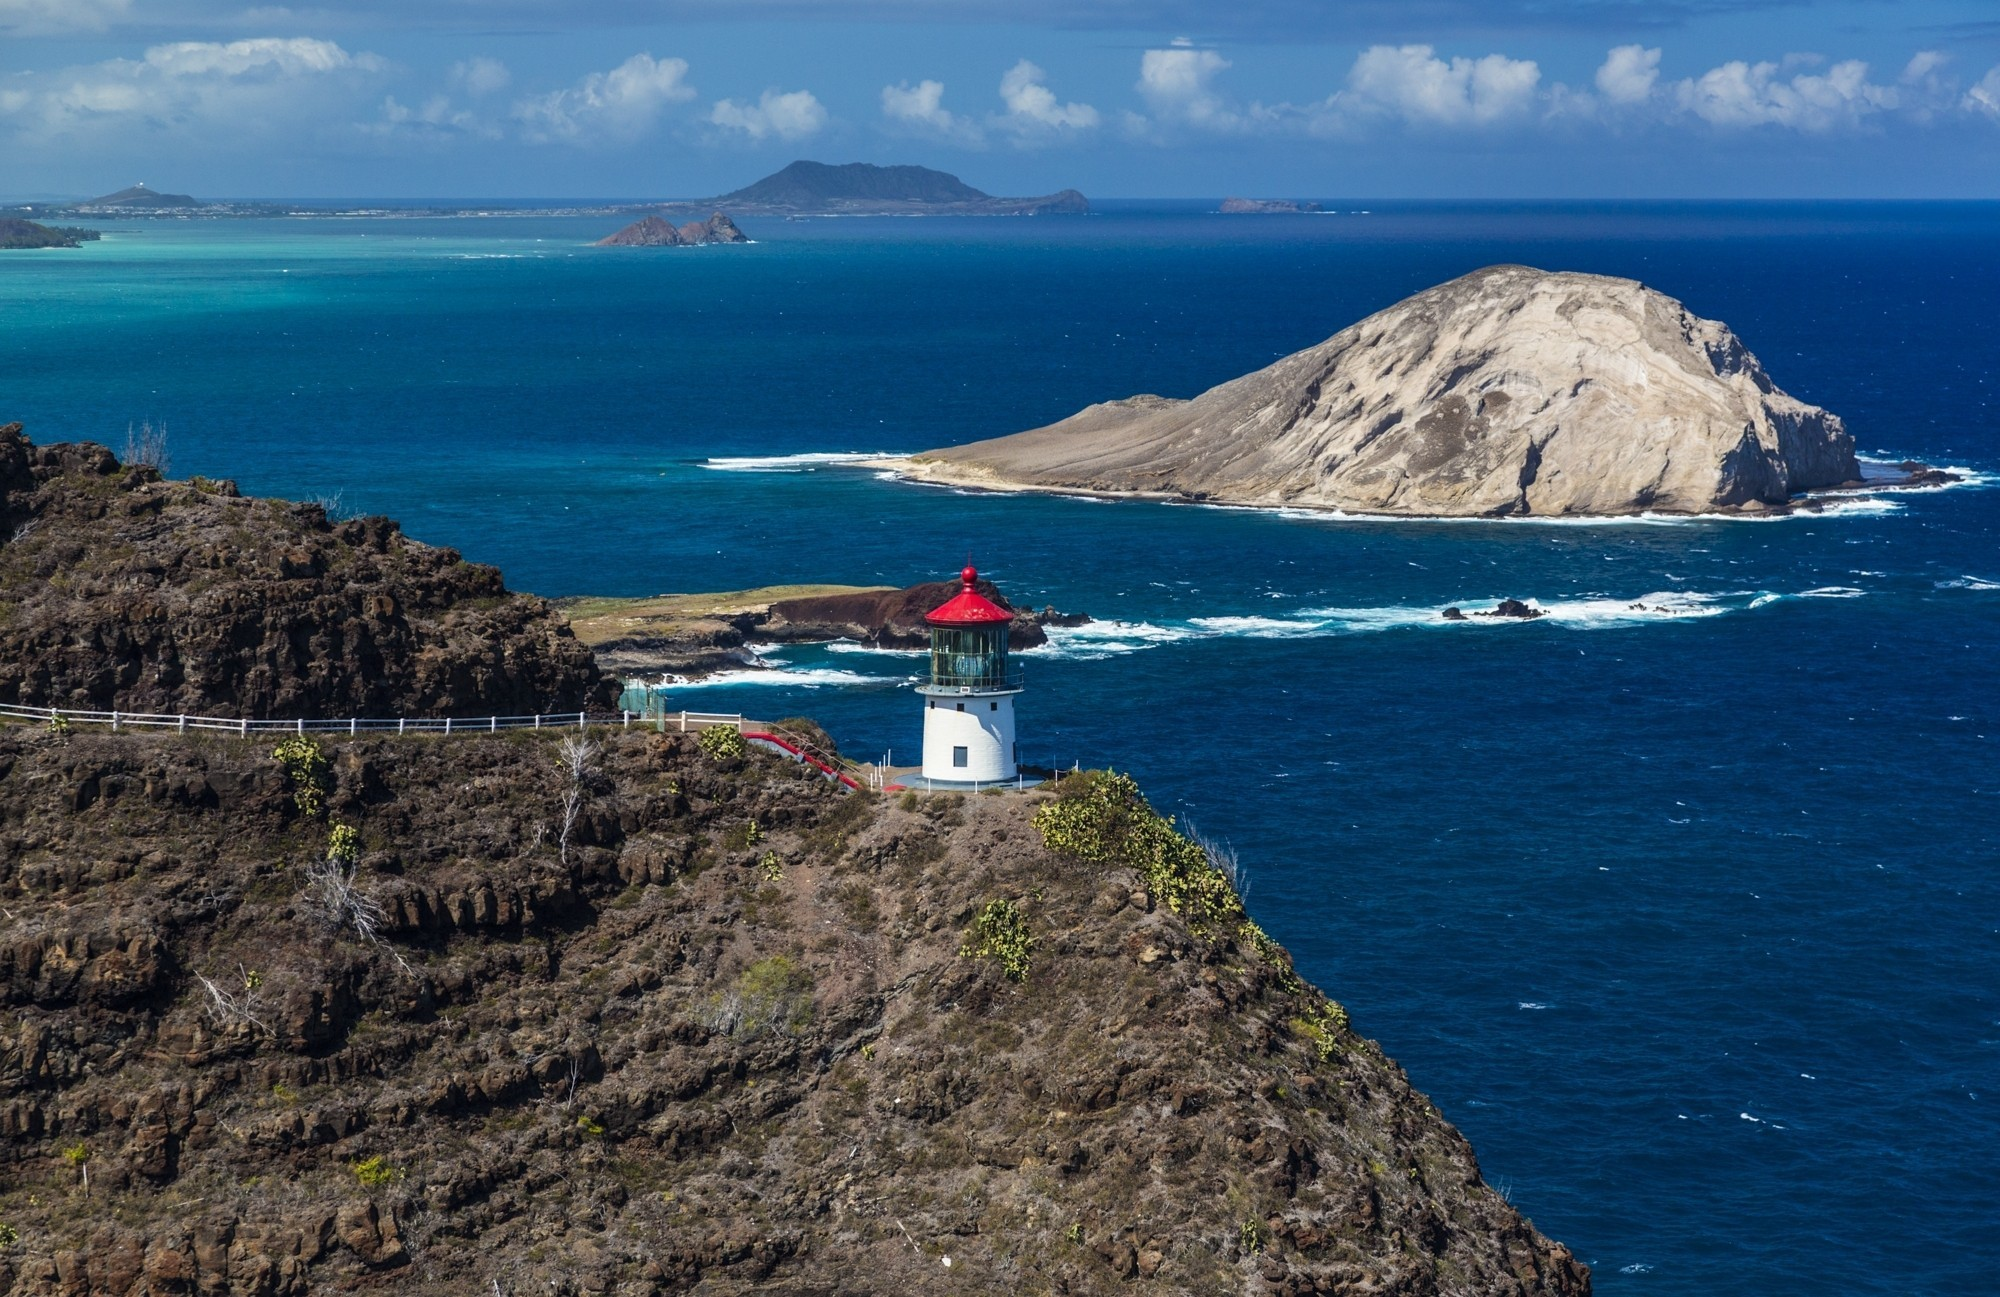 Hawaii: Google Maps makes it possible to visit Oahu, if